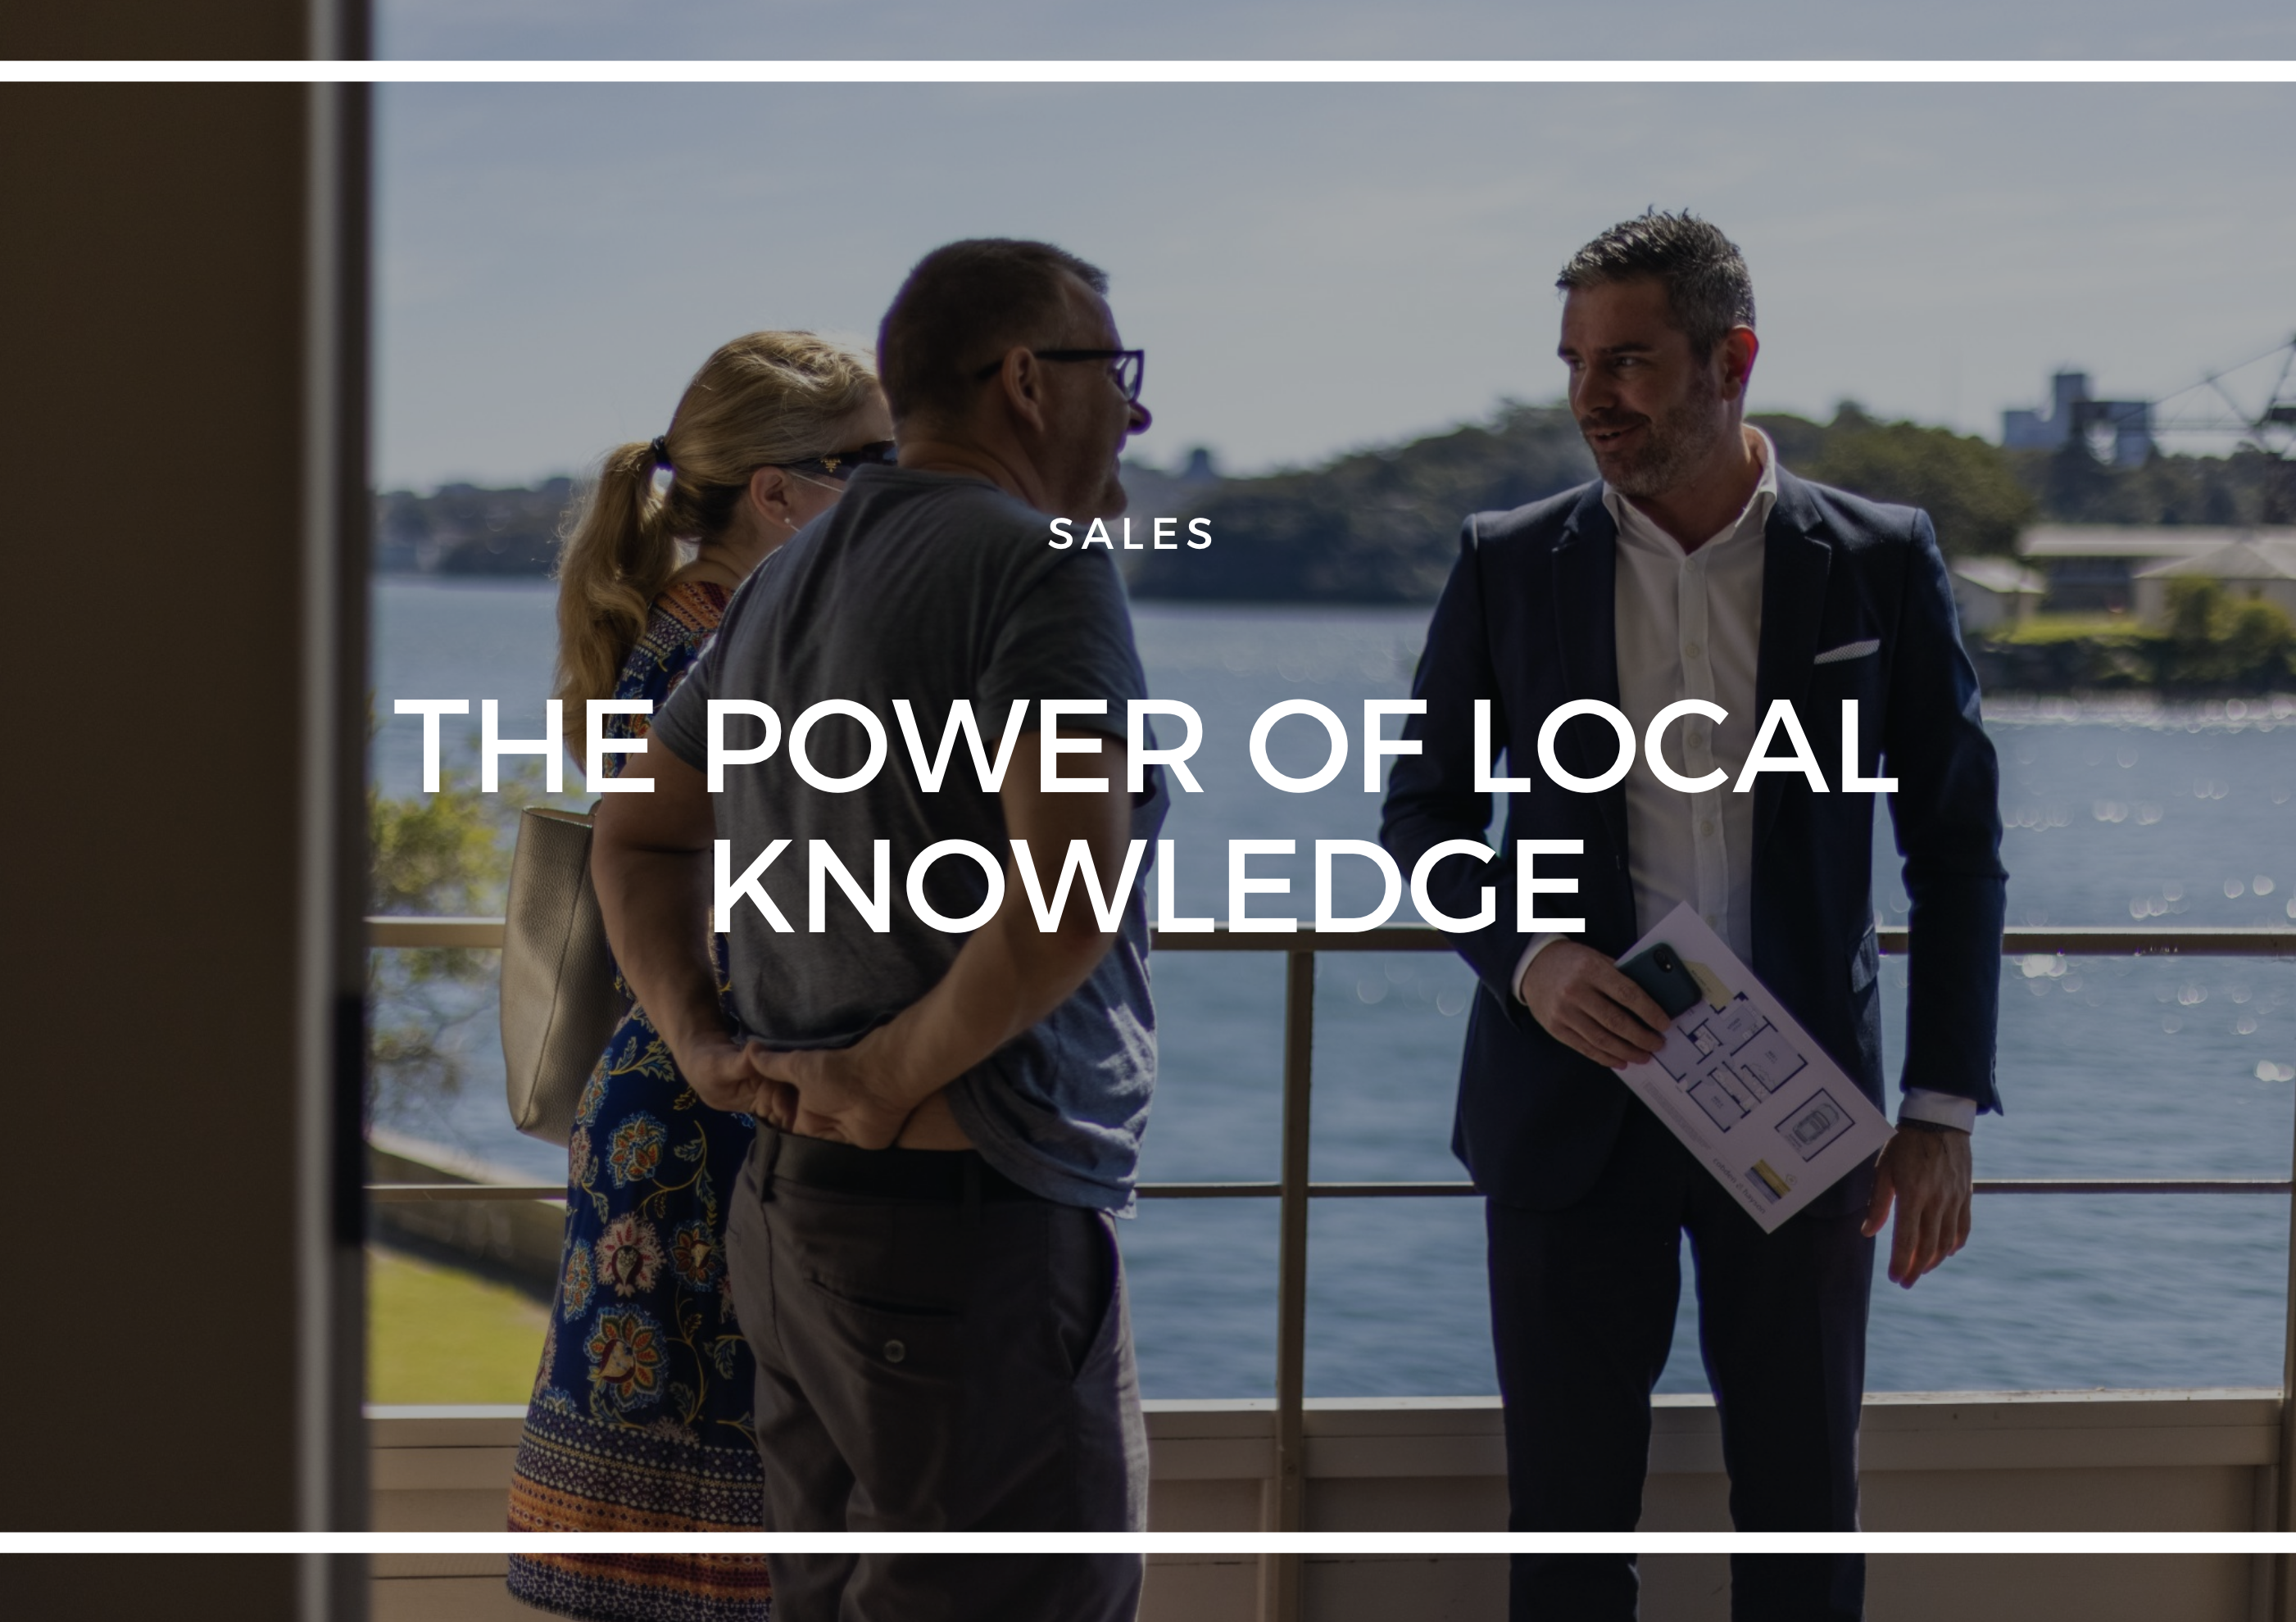 THE POWER OF LOCAL KNOWLEDGE